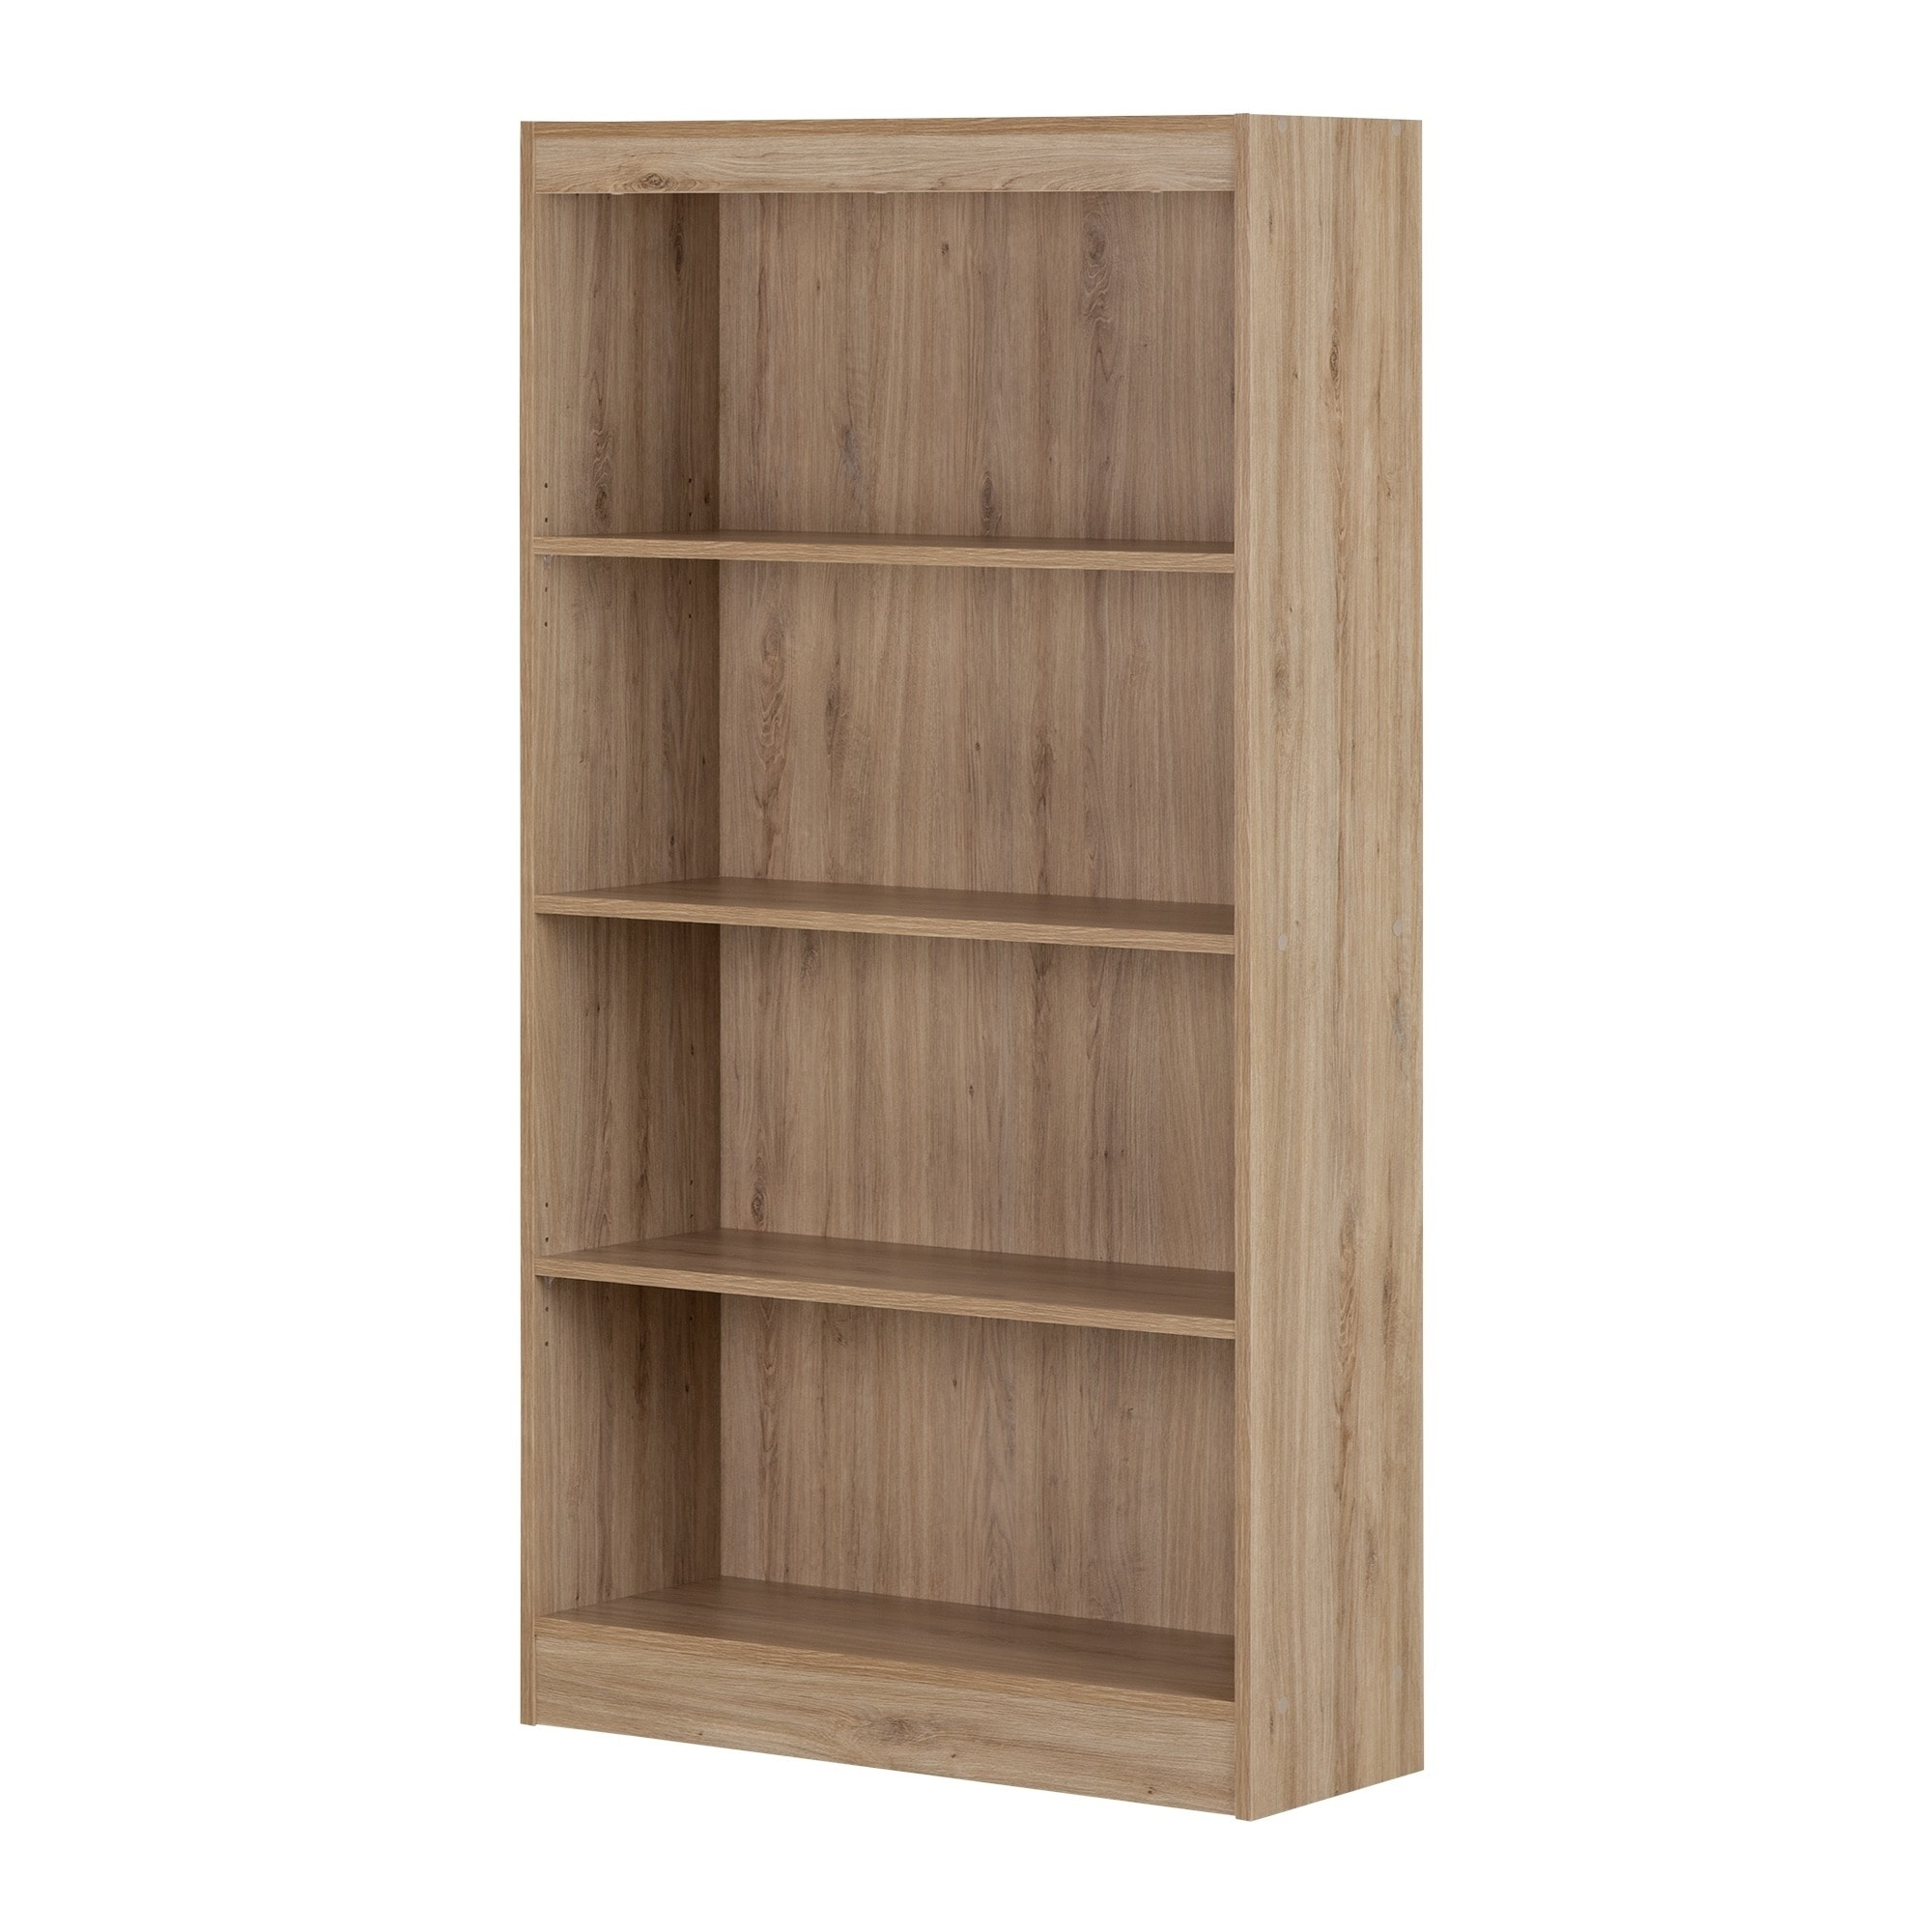 Buy Cherry Finish Bookshelves Bookcases Online At